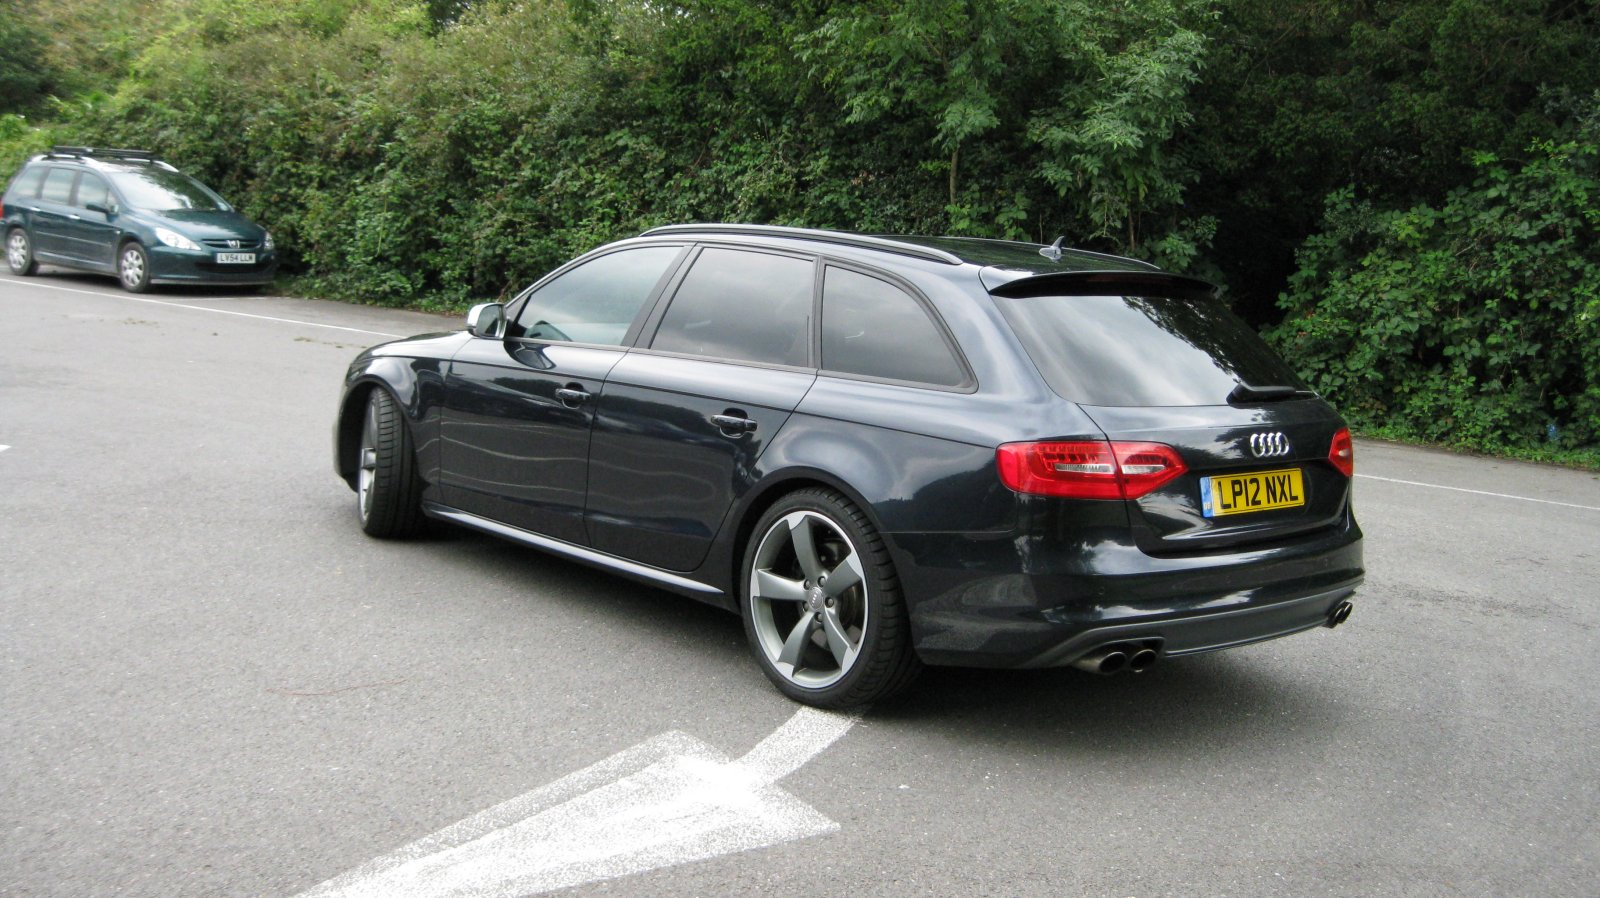 2012 audi s4 avant 3 0 tfsi quattro black edition for sale the car spy. Black Bedroom Furniture Sets. Home Design Ideas